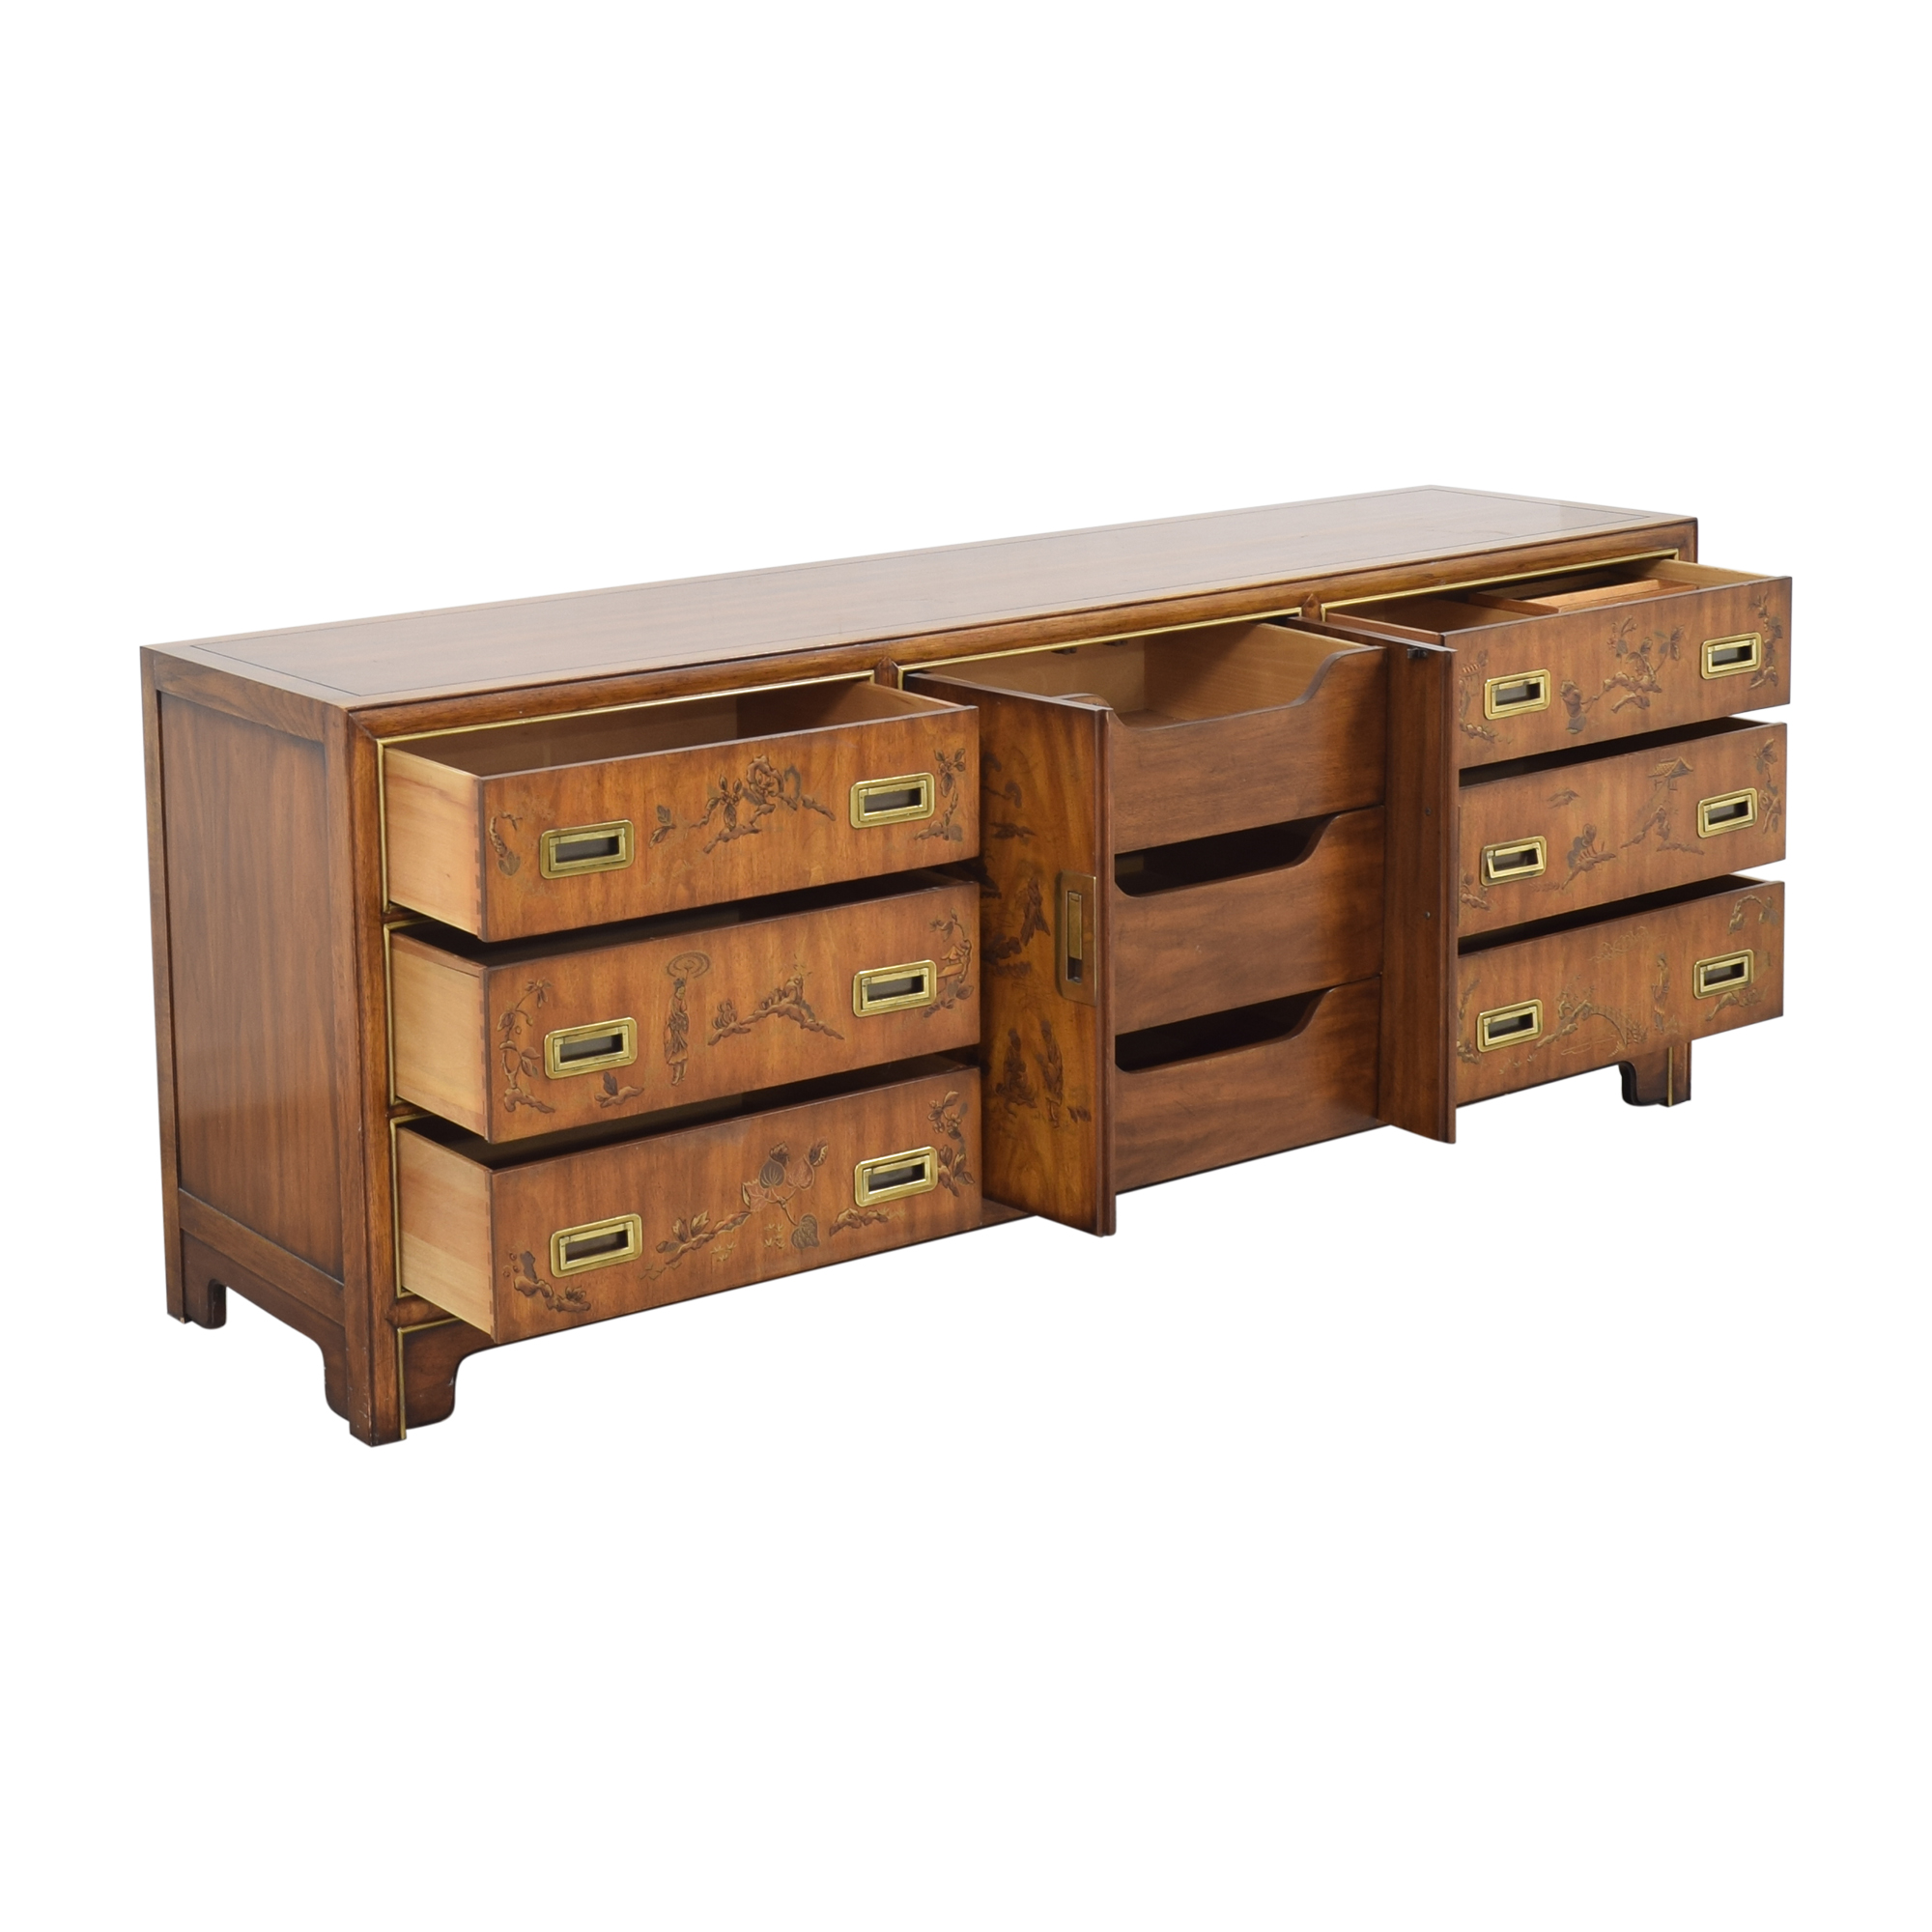 Drexel Heritage Drexel Heritage Dynasty Collection Campaign Dresser coupon